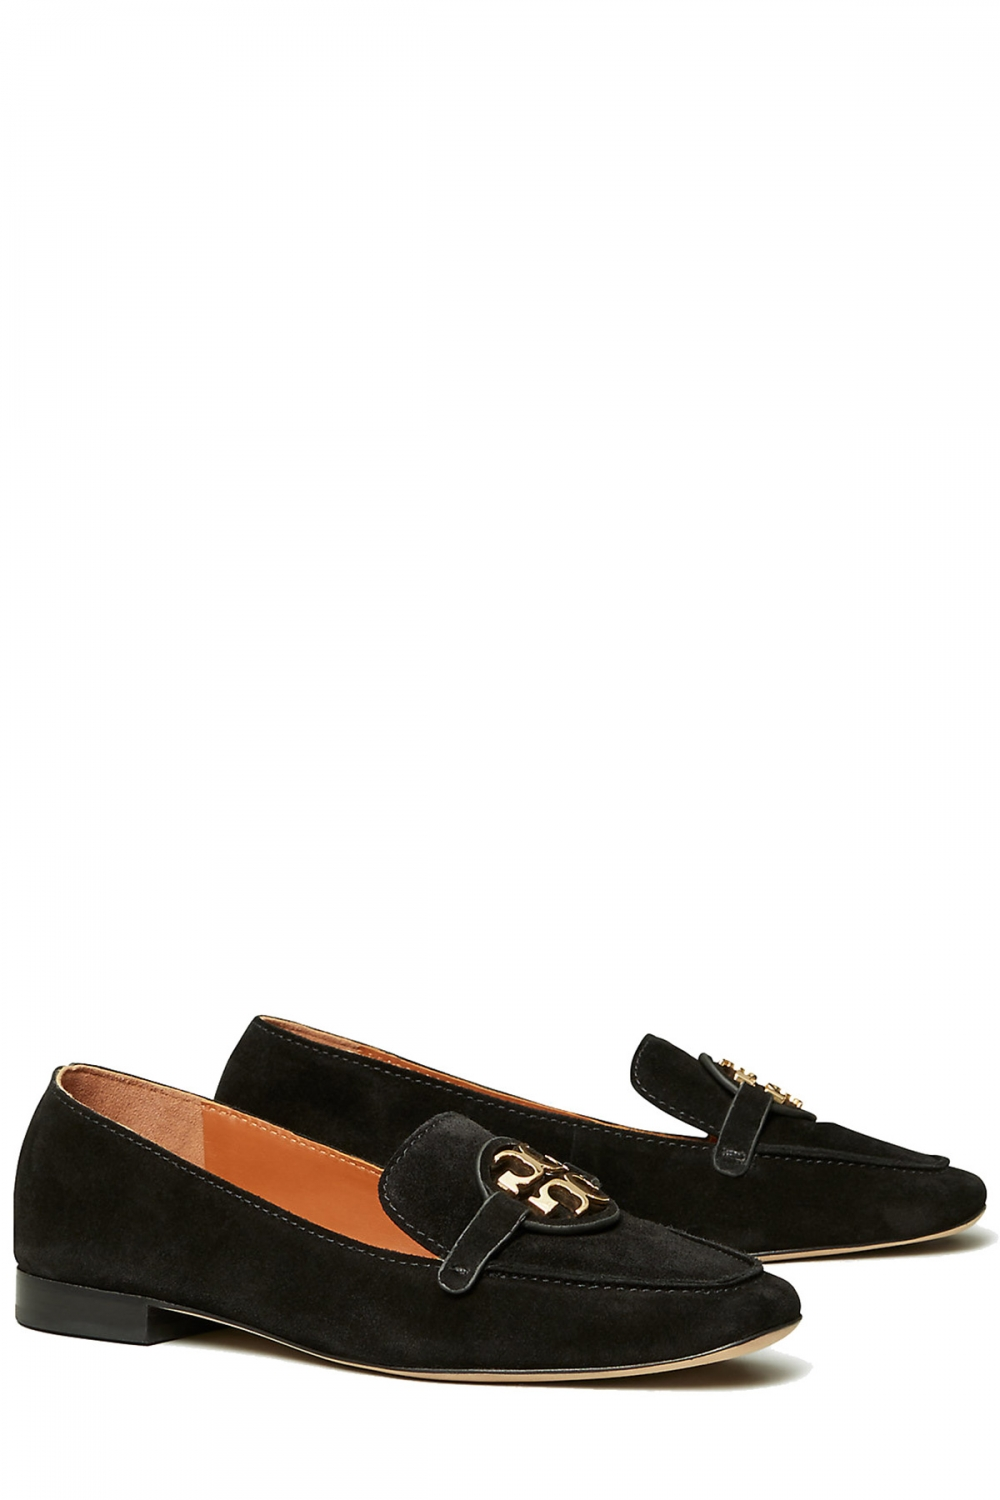 Tory Burch Damen Metal Miller Loafer Schwarz 2